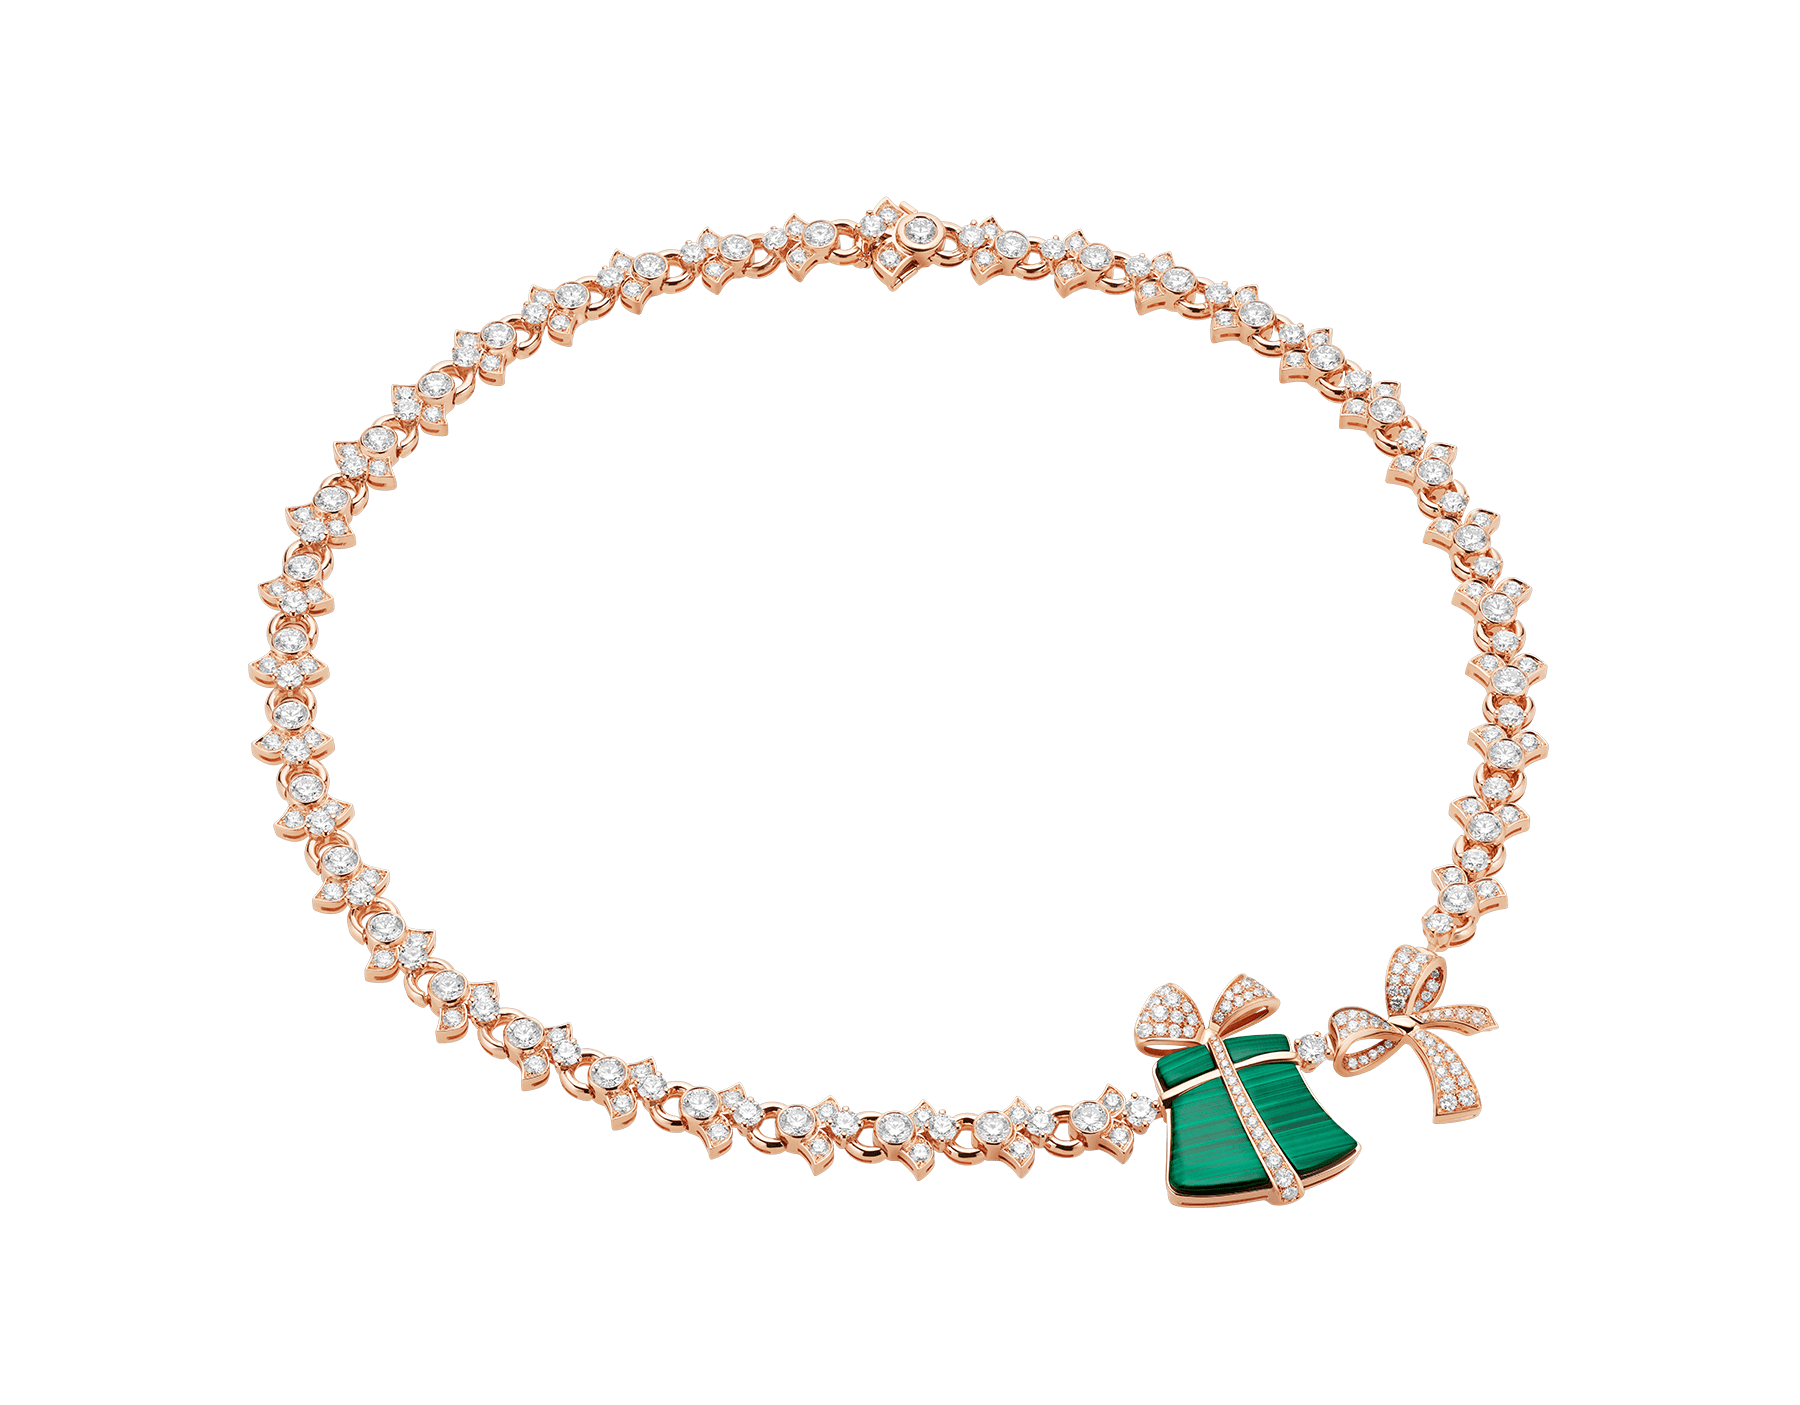 Festa 18 kt rose gold necklace set with malachite elements and pavé diamonds 355917 image 1